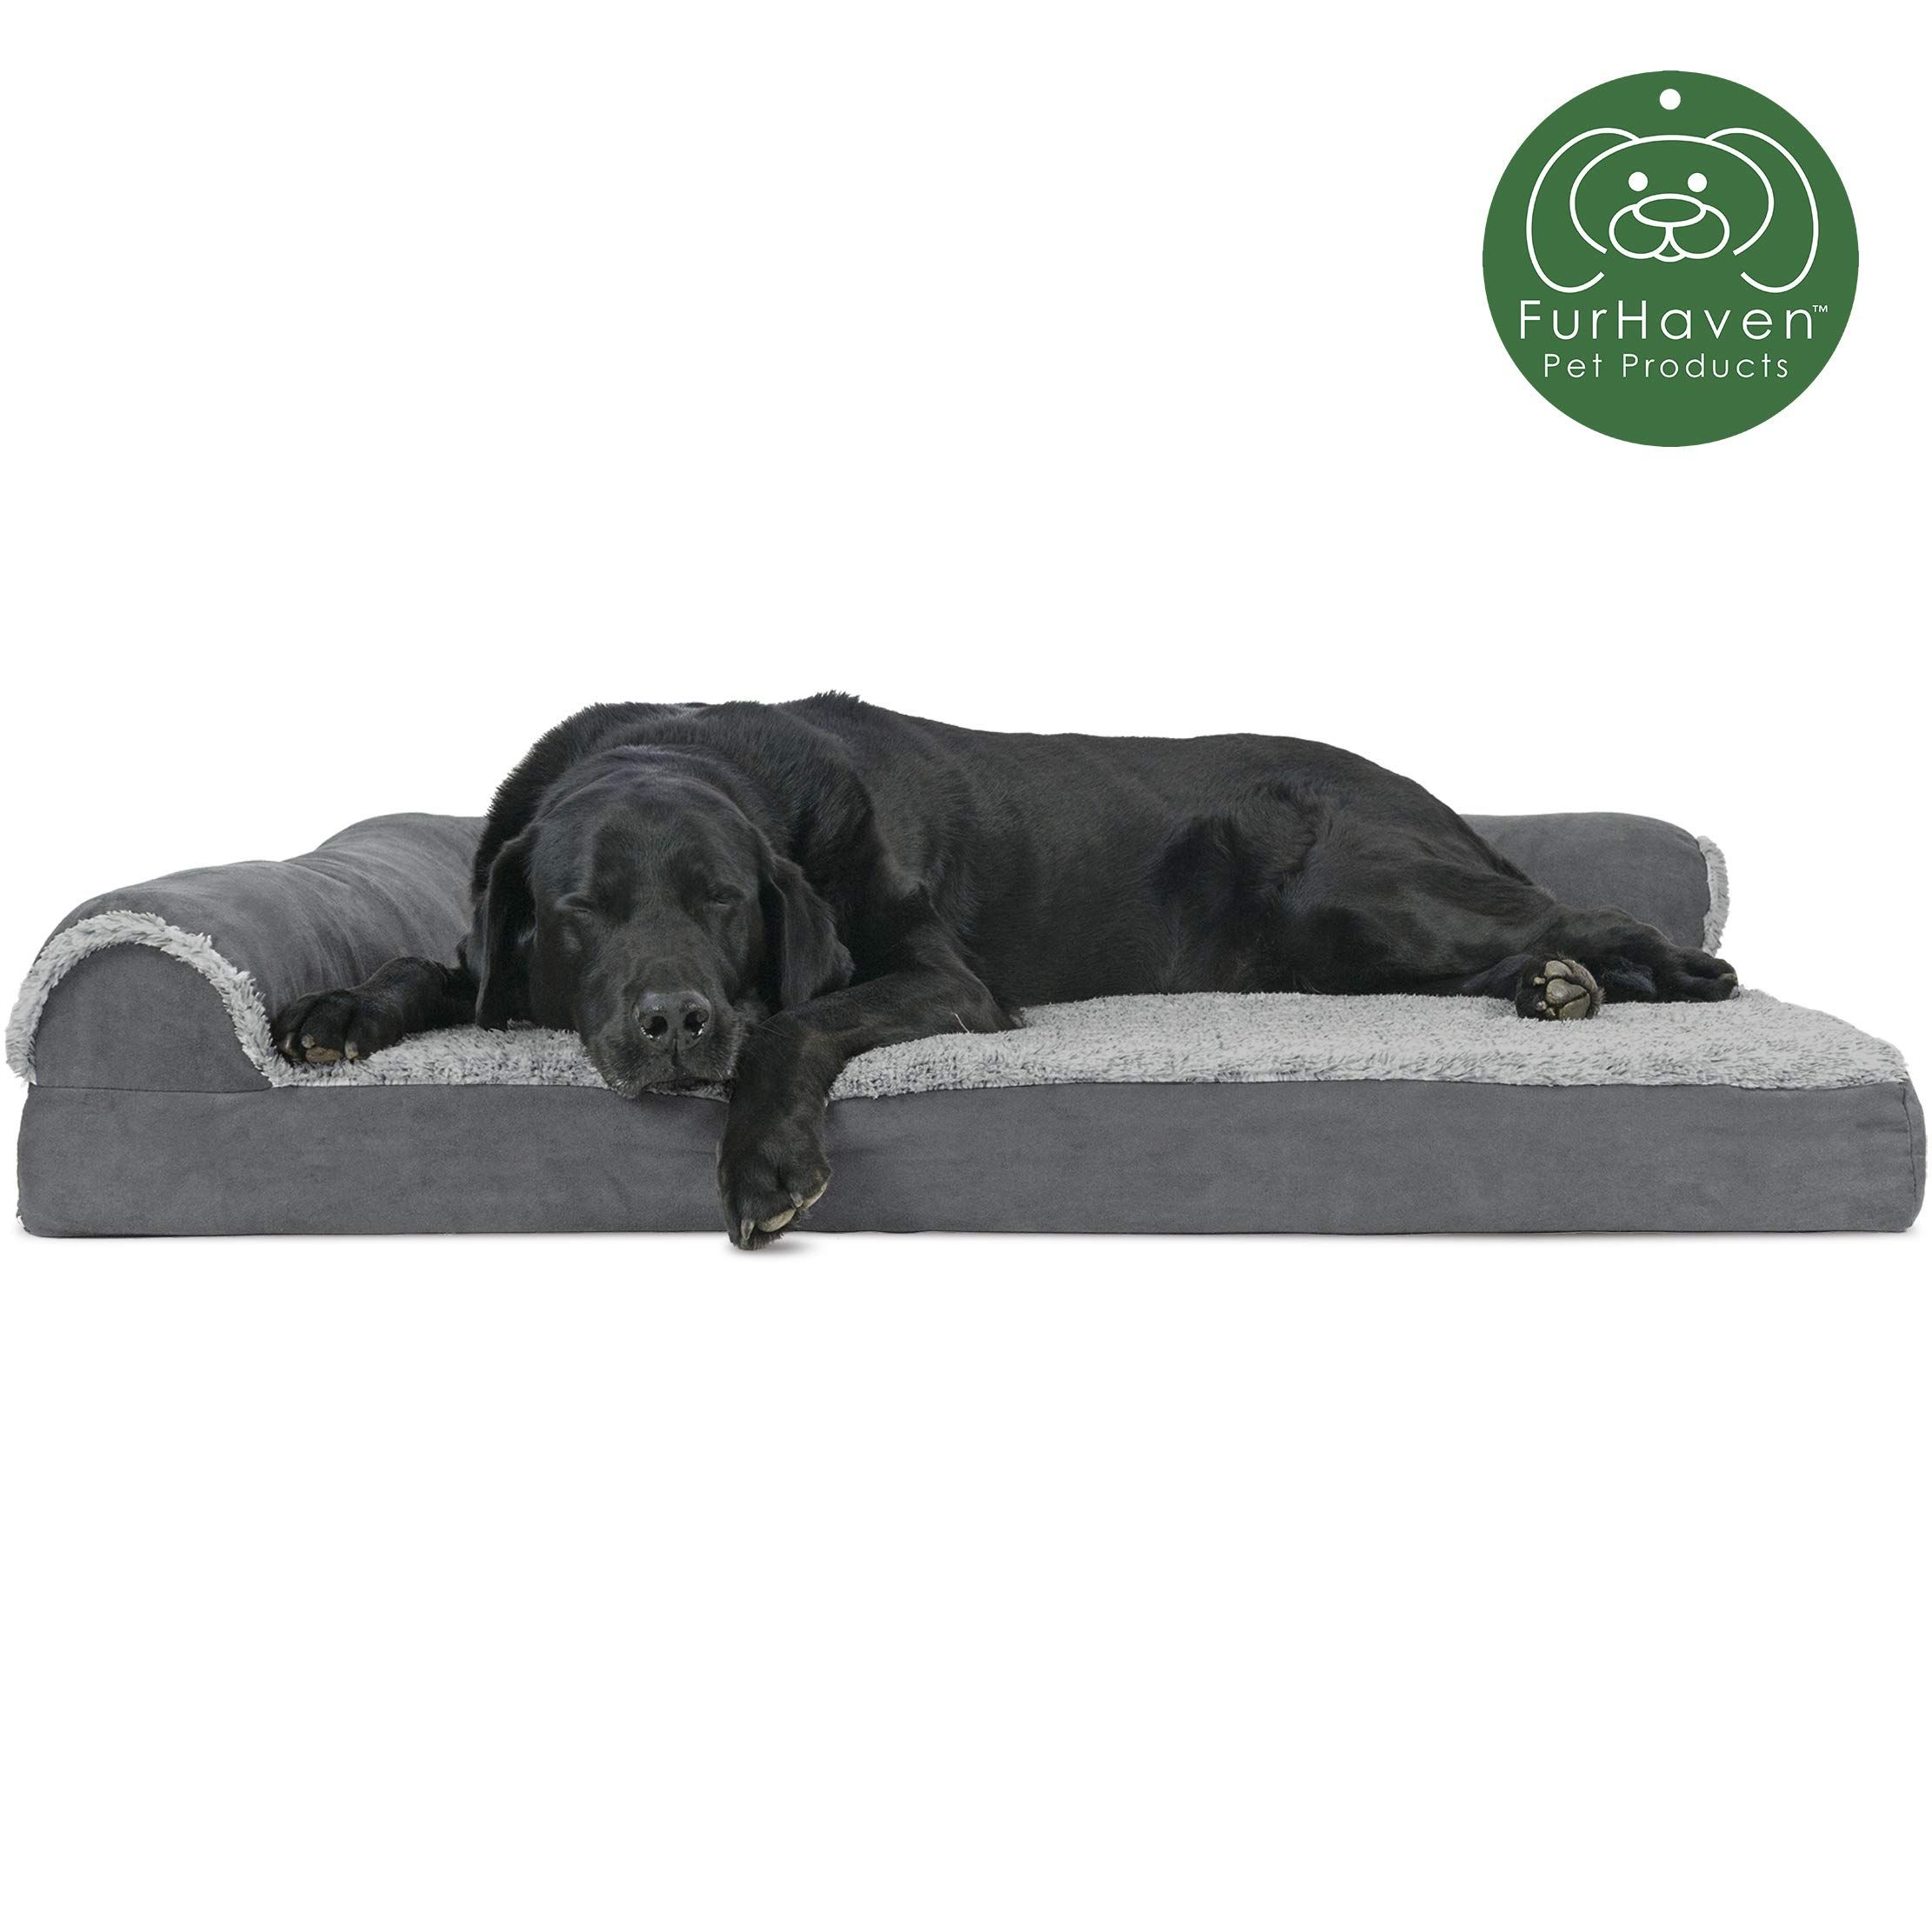 Furhaven Pet Dog Bed Deluxe Orthopedic Goliath Quilted Faux Fur And Velvet L Shaped Chaise Lounge Corner Living Dog Pet Beds Couch Pet Bed Orthopedic Dog Bed